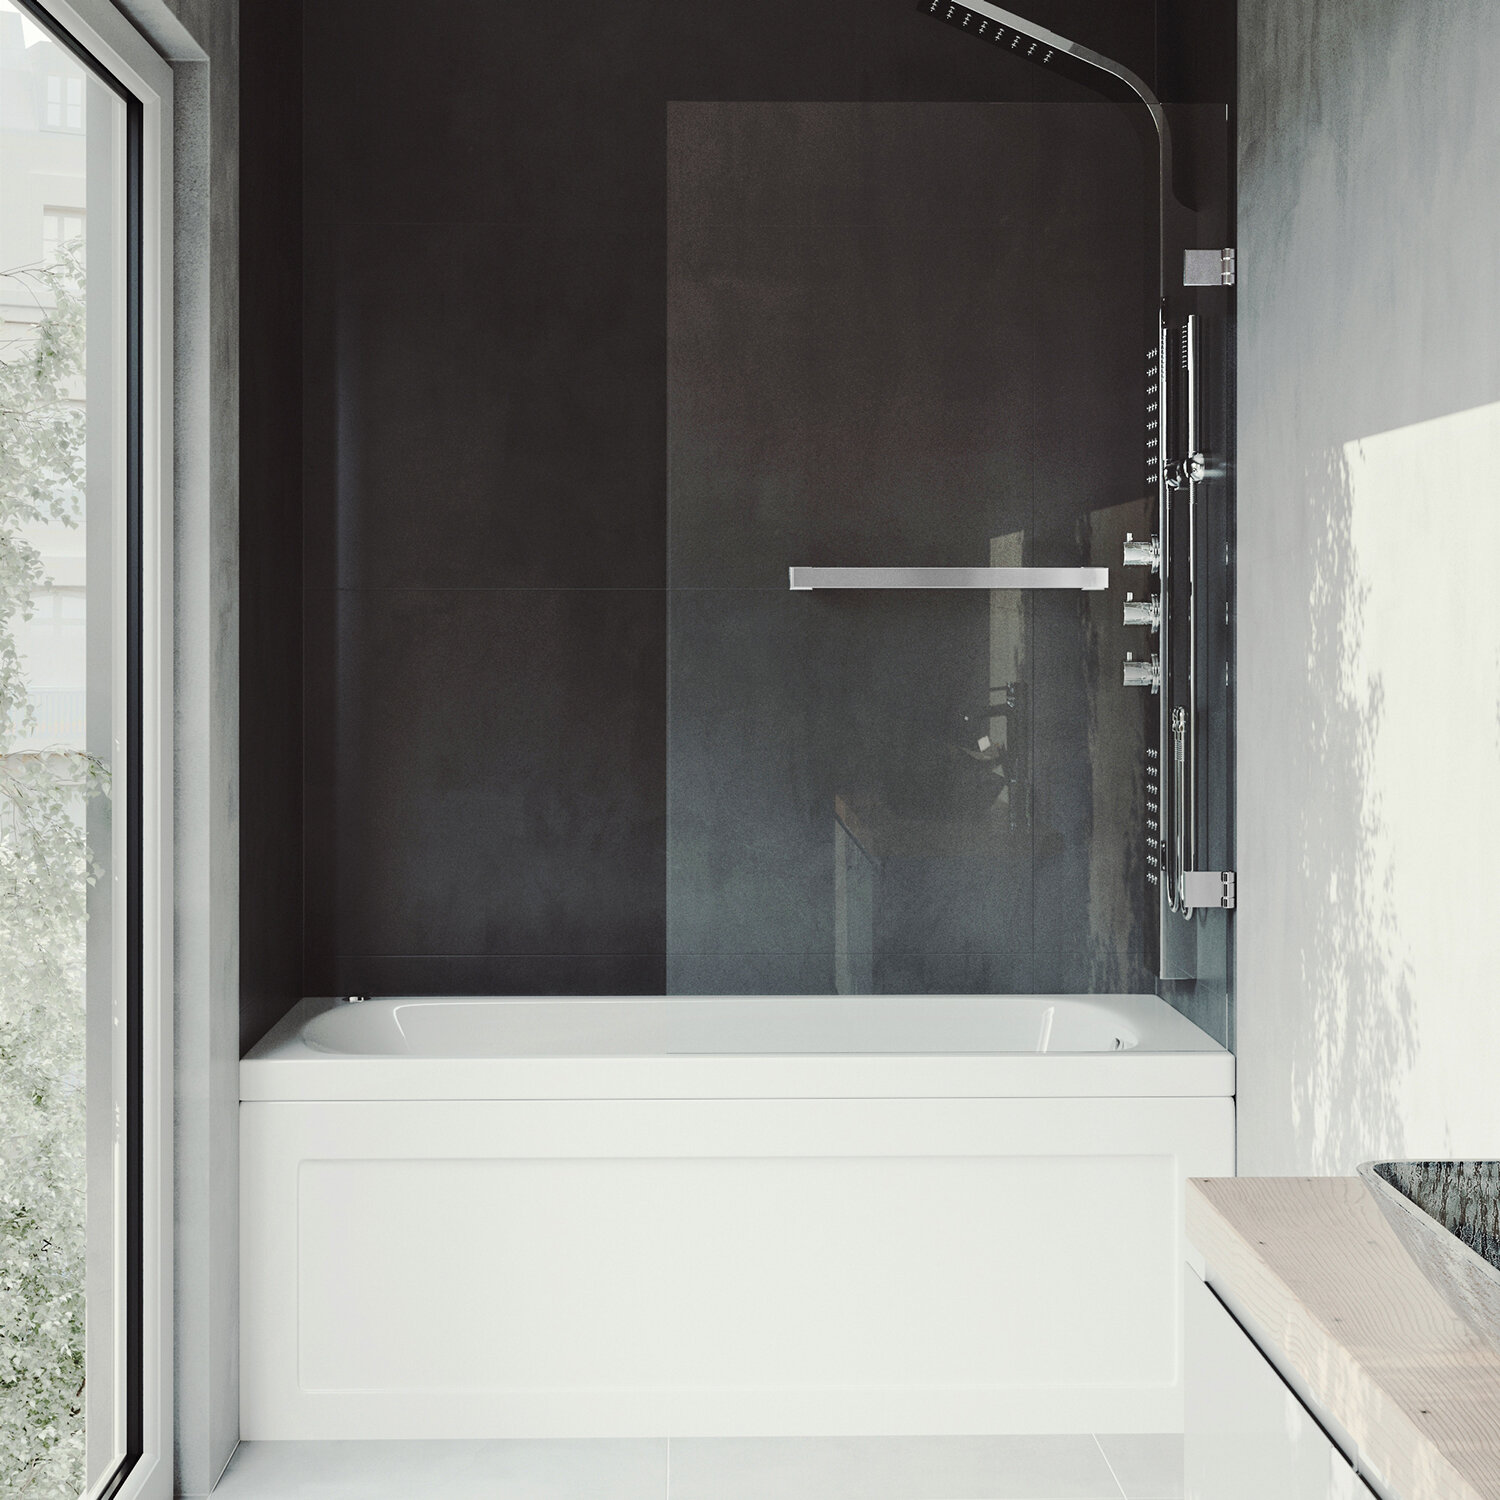 door a trad how style with tub and glass install sliding to care shower doors bathtub traditional installation